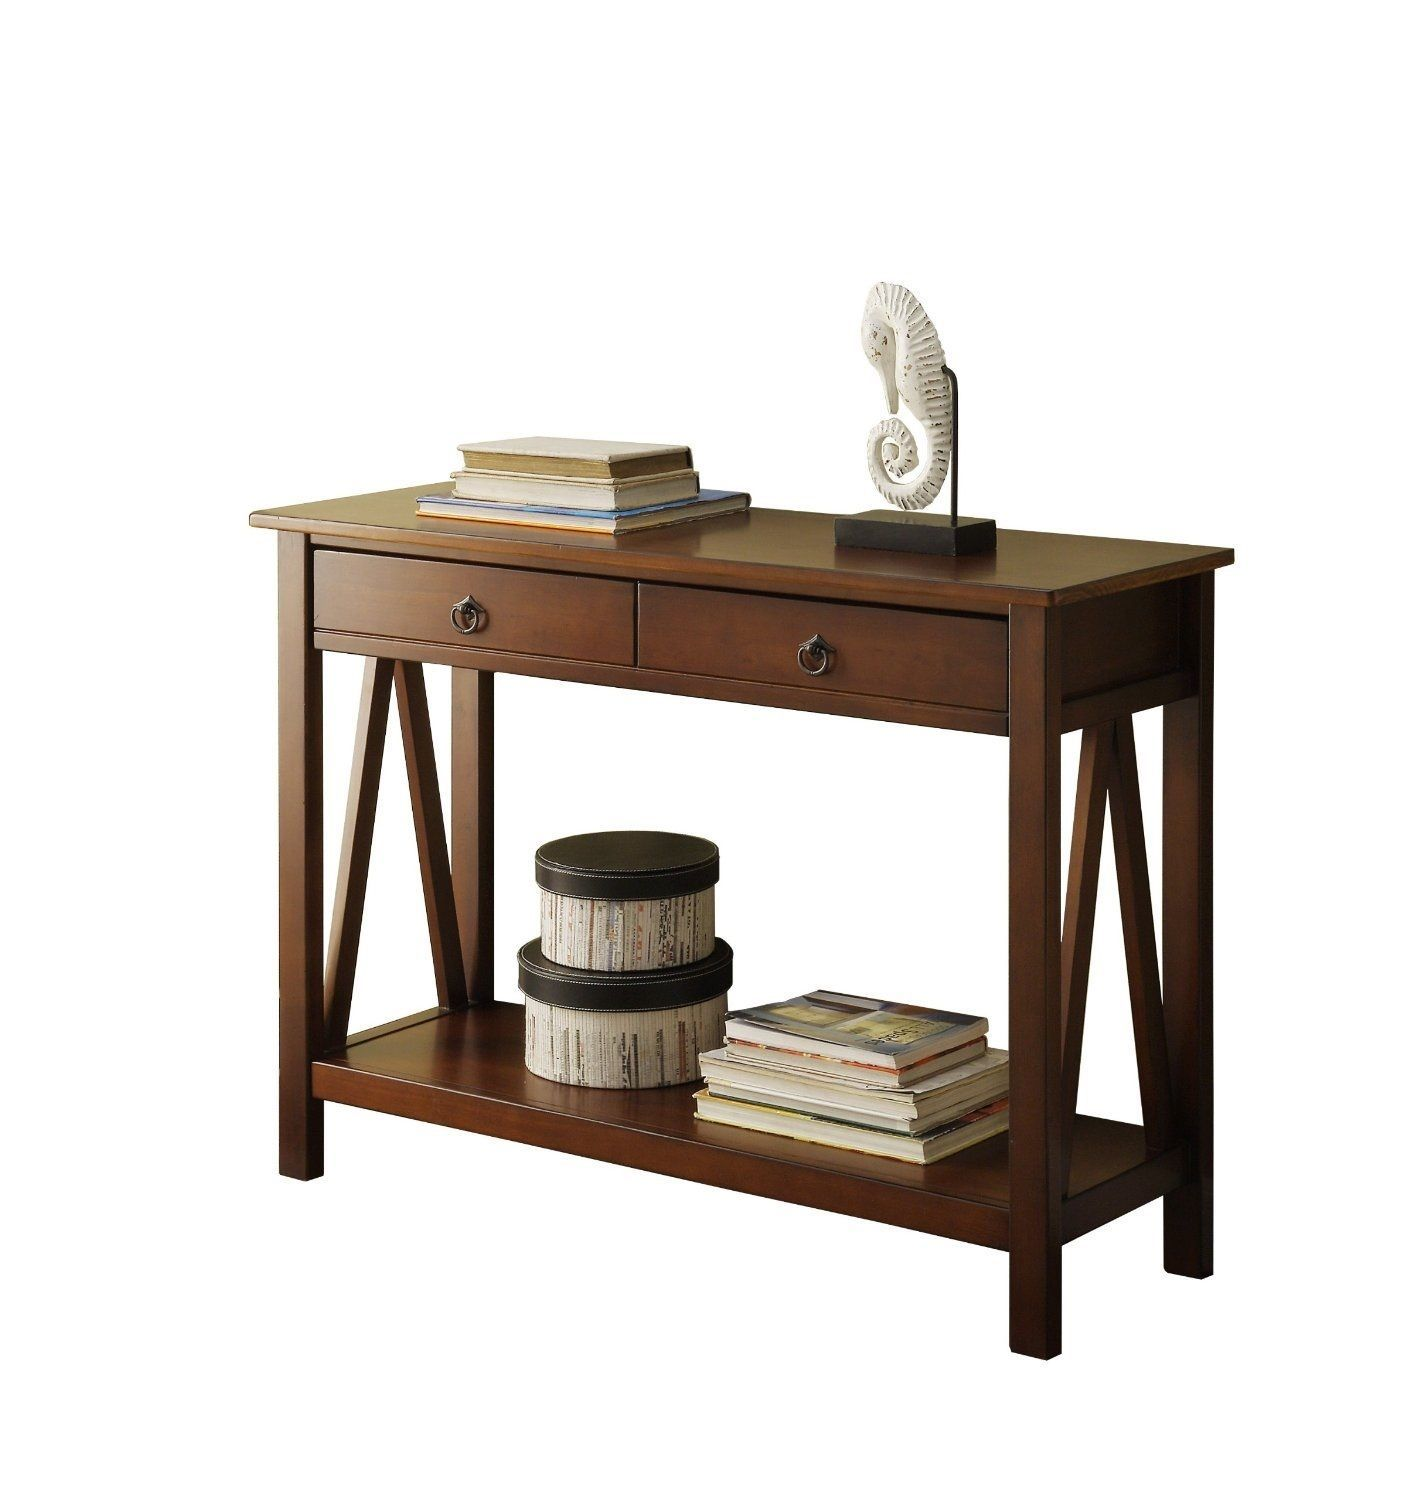 Home classic console table antique modern style decor for Modern decorative table accents